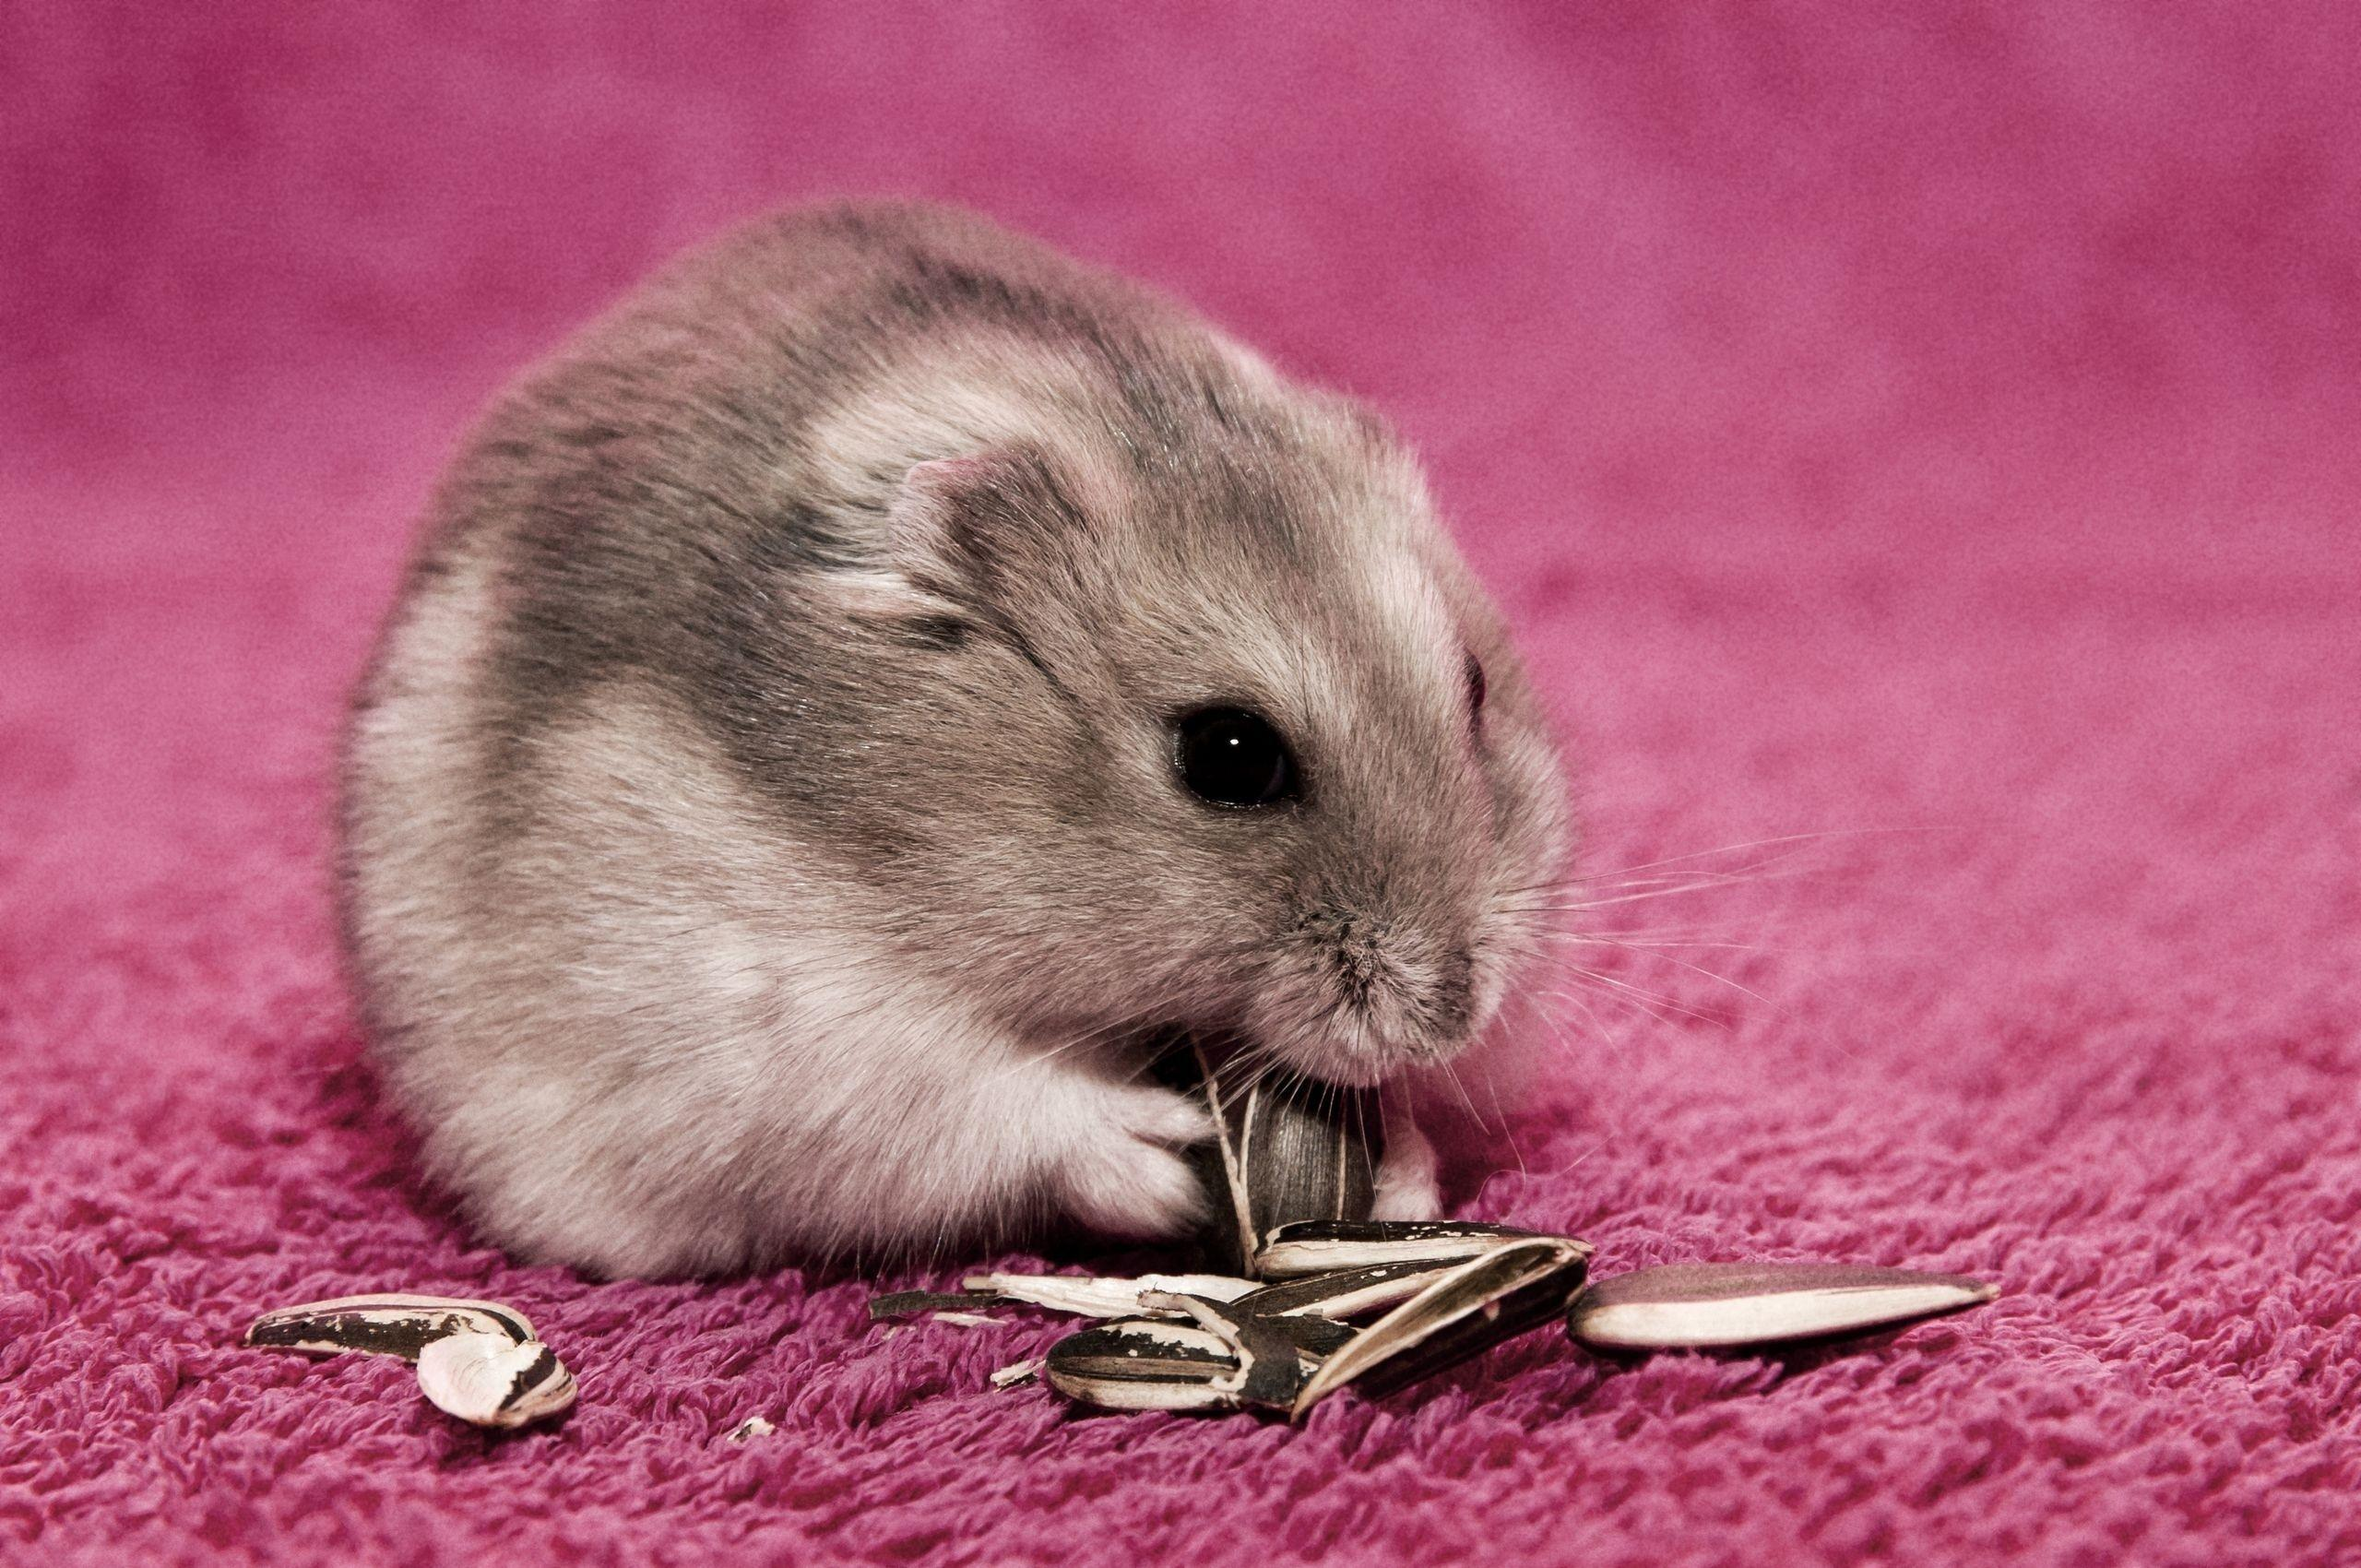 Cute Hamster Wallpapers Android Apps on Google Play | Wallpapers ...